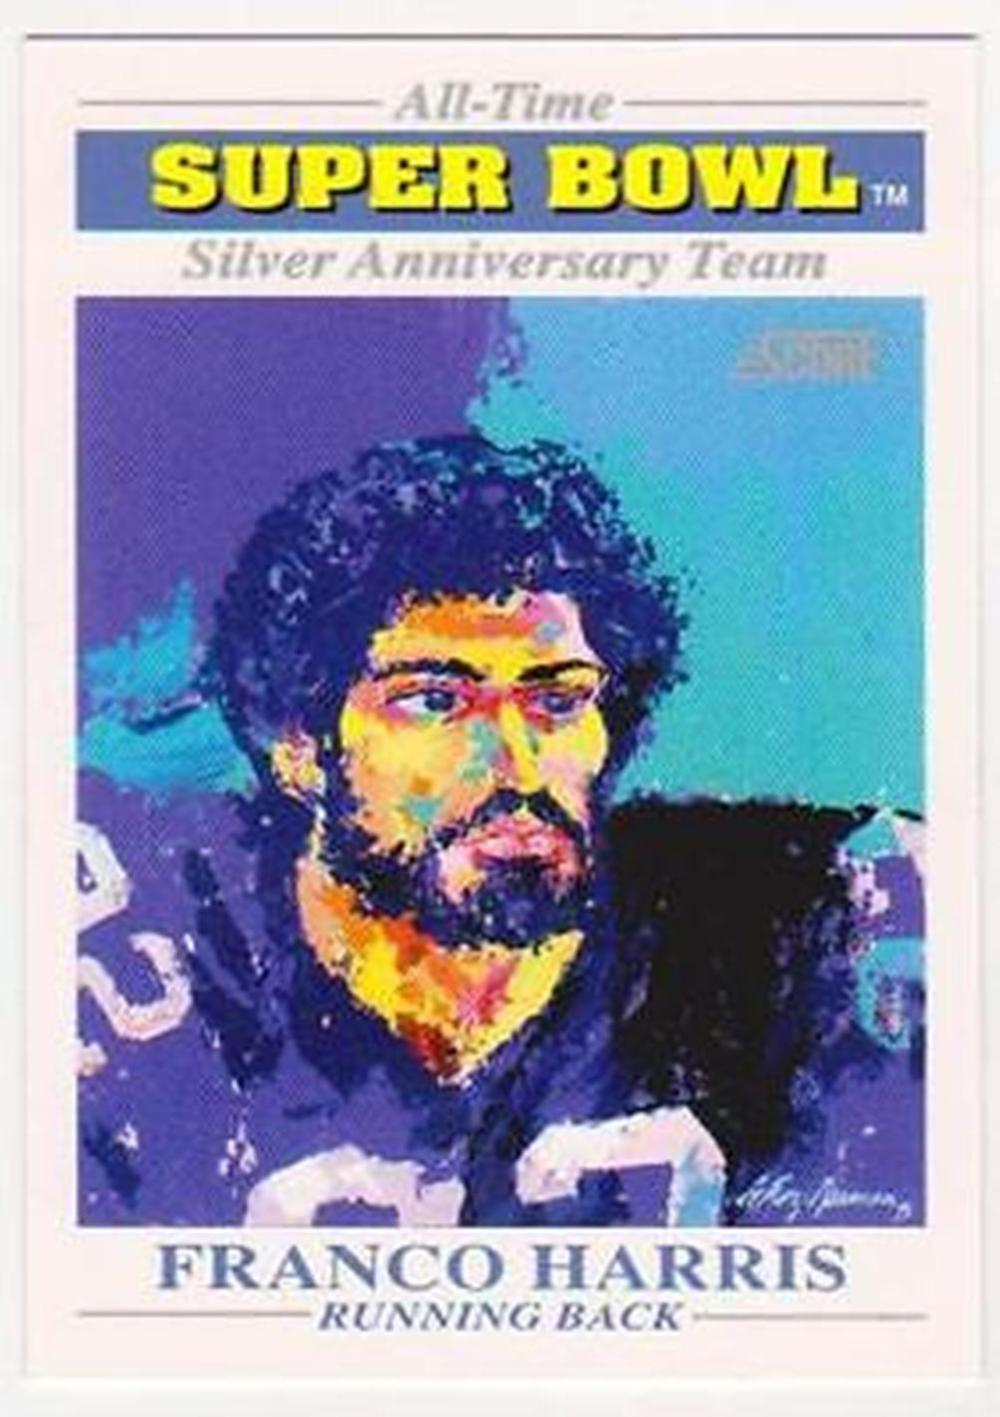 STEELERS 1991 SCORE FRANCO HARRIS LEROY NEIMAN SILVER ANN. TEAM - SCARCE